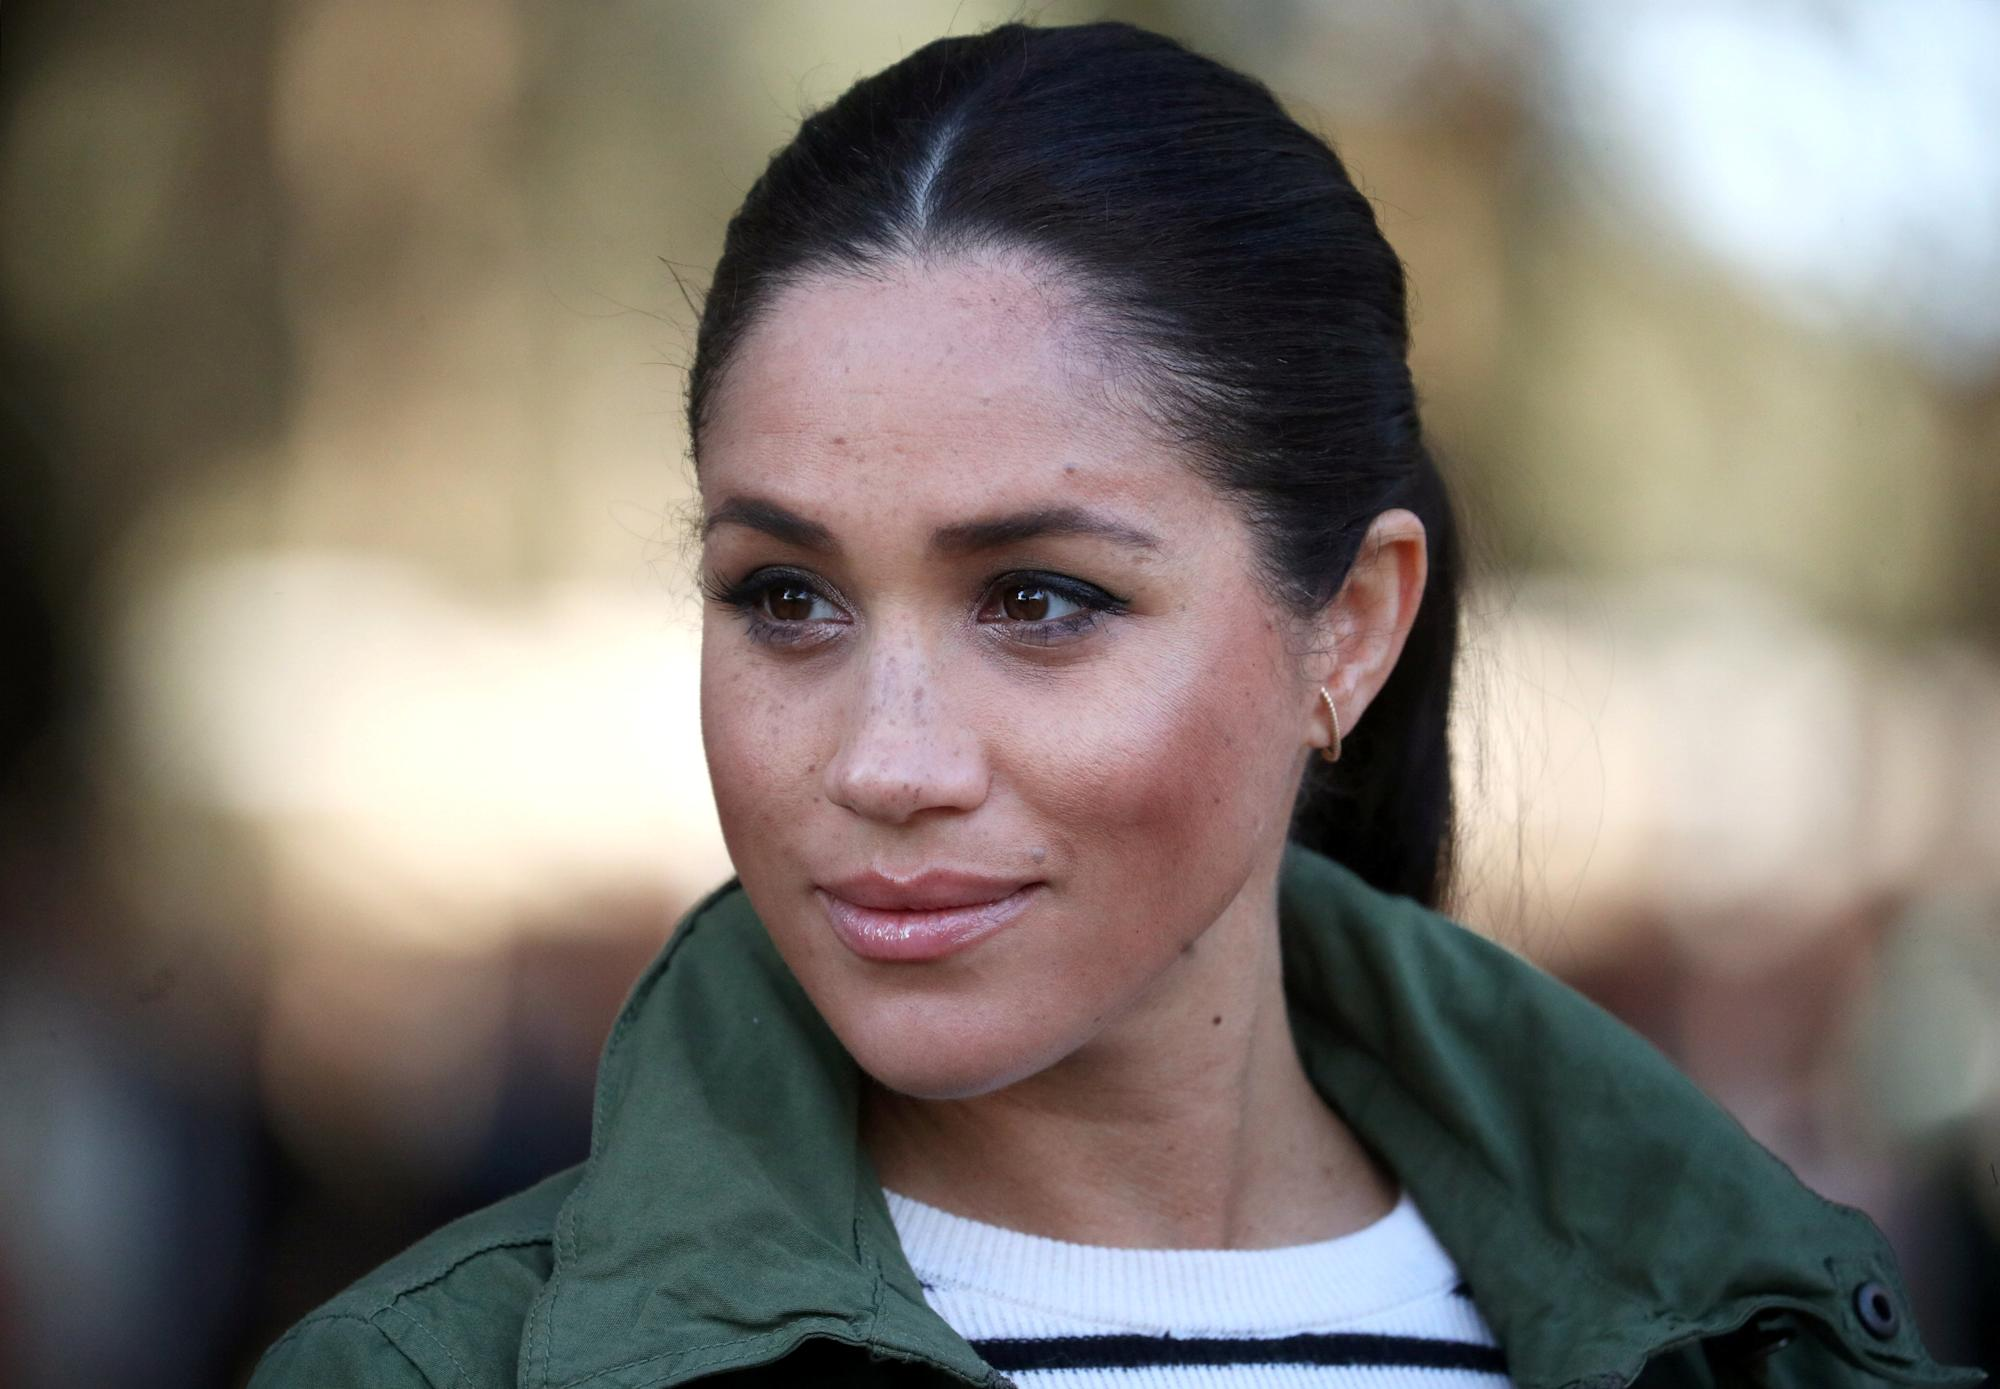 Art lecturer suspended over accusations of racism after 'colourful' Meghan comment